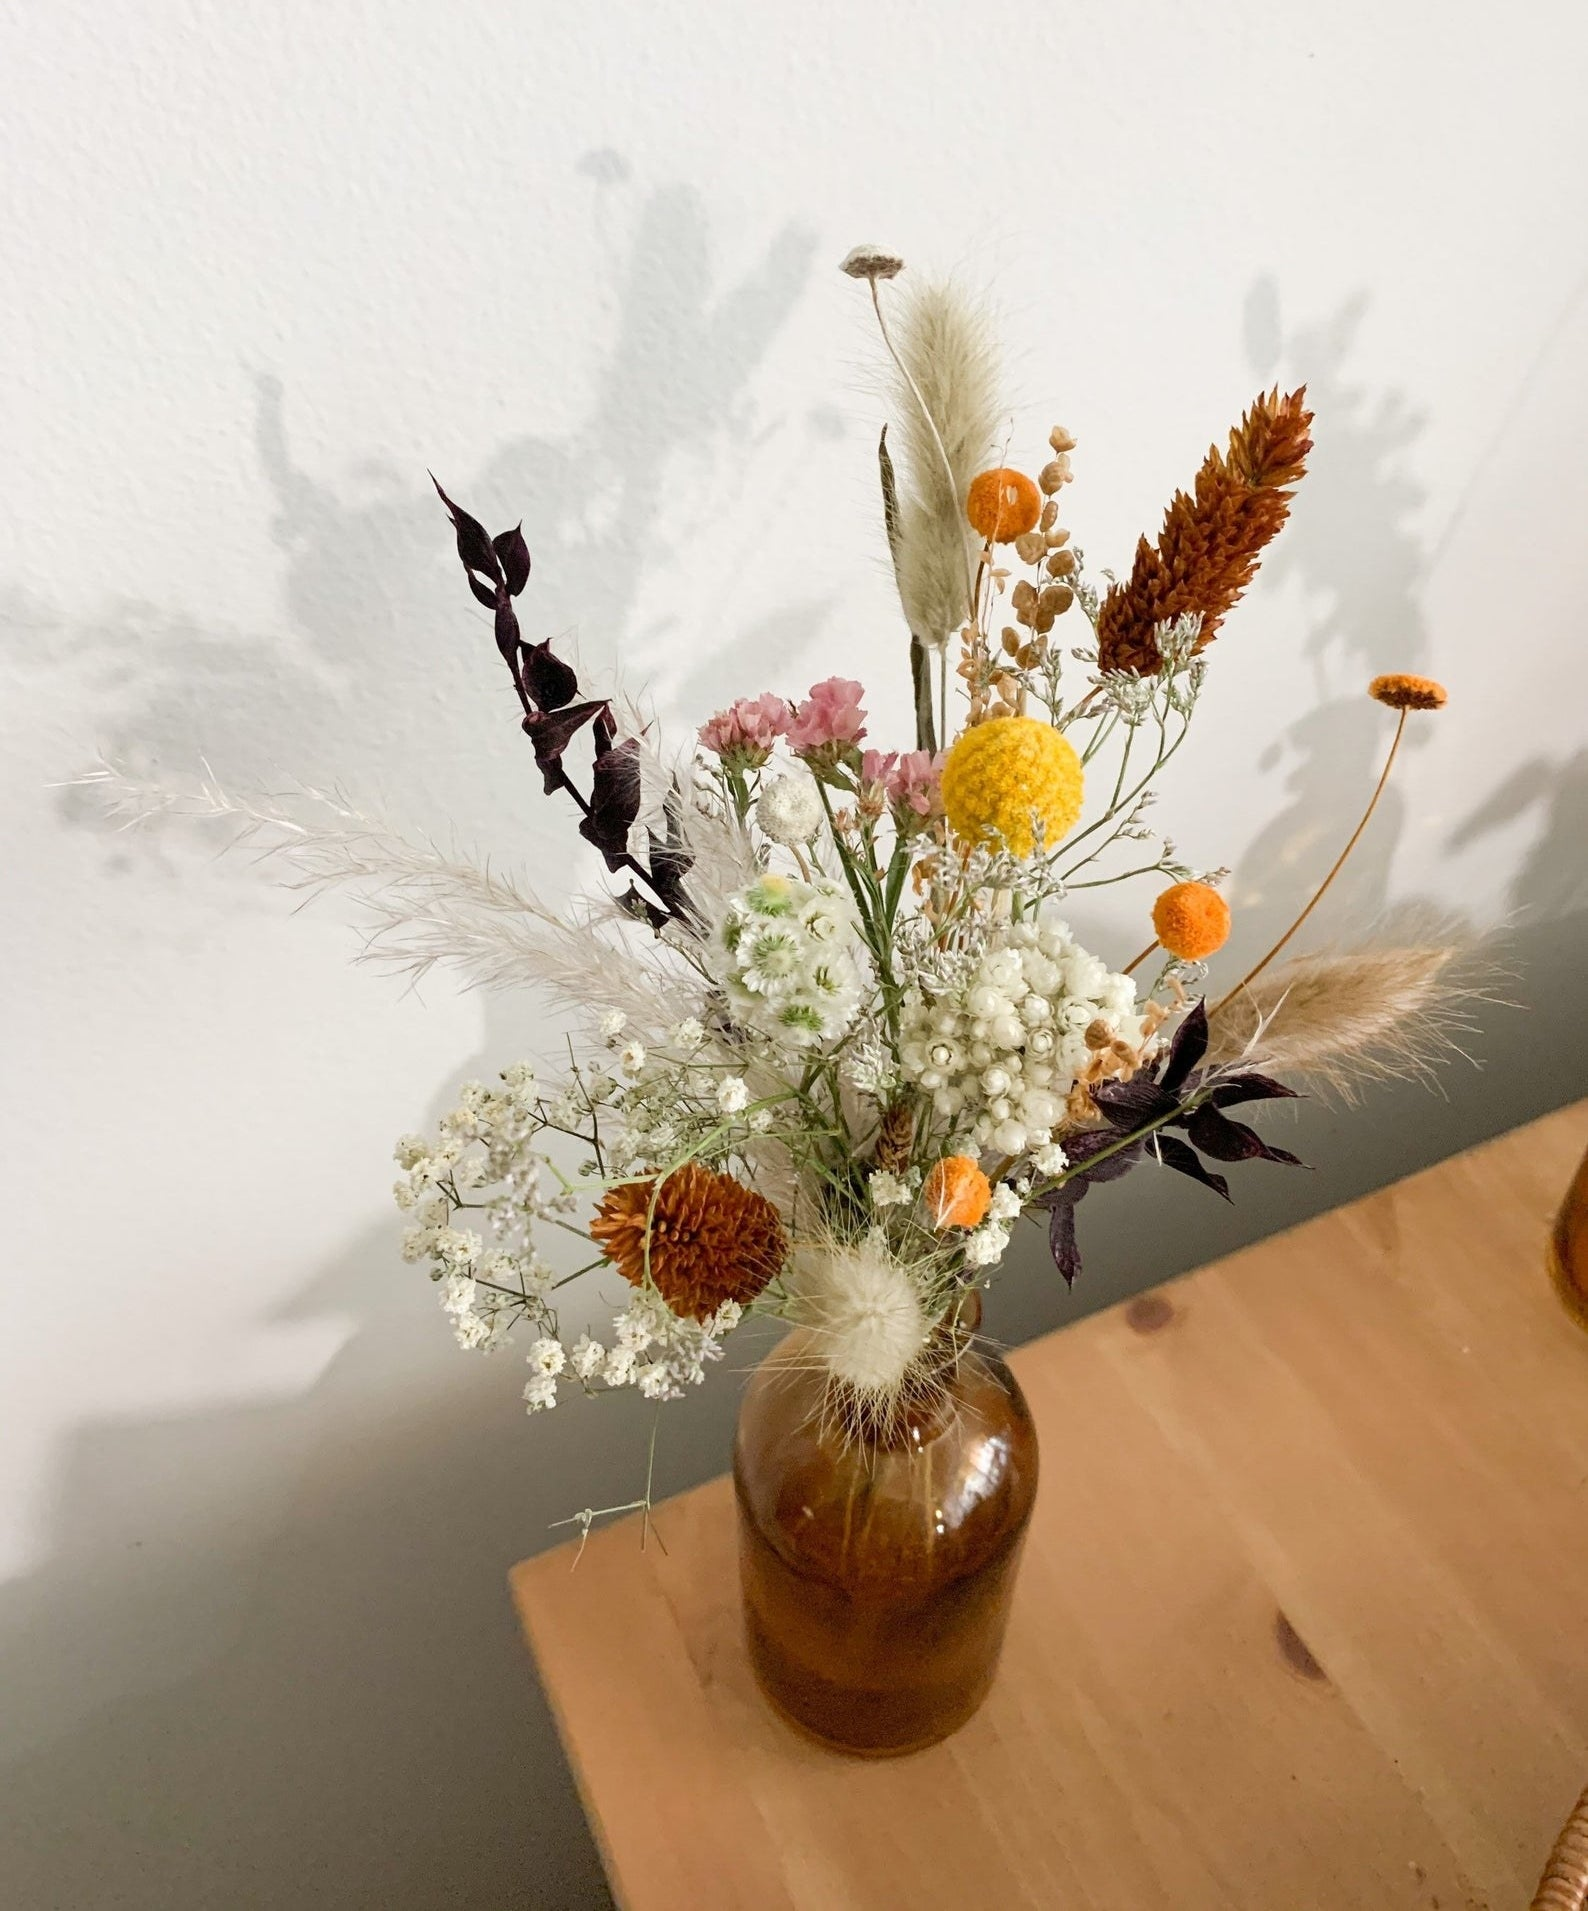 the rustic dried arrangement in an amber vase